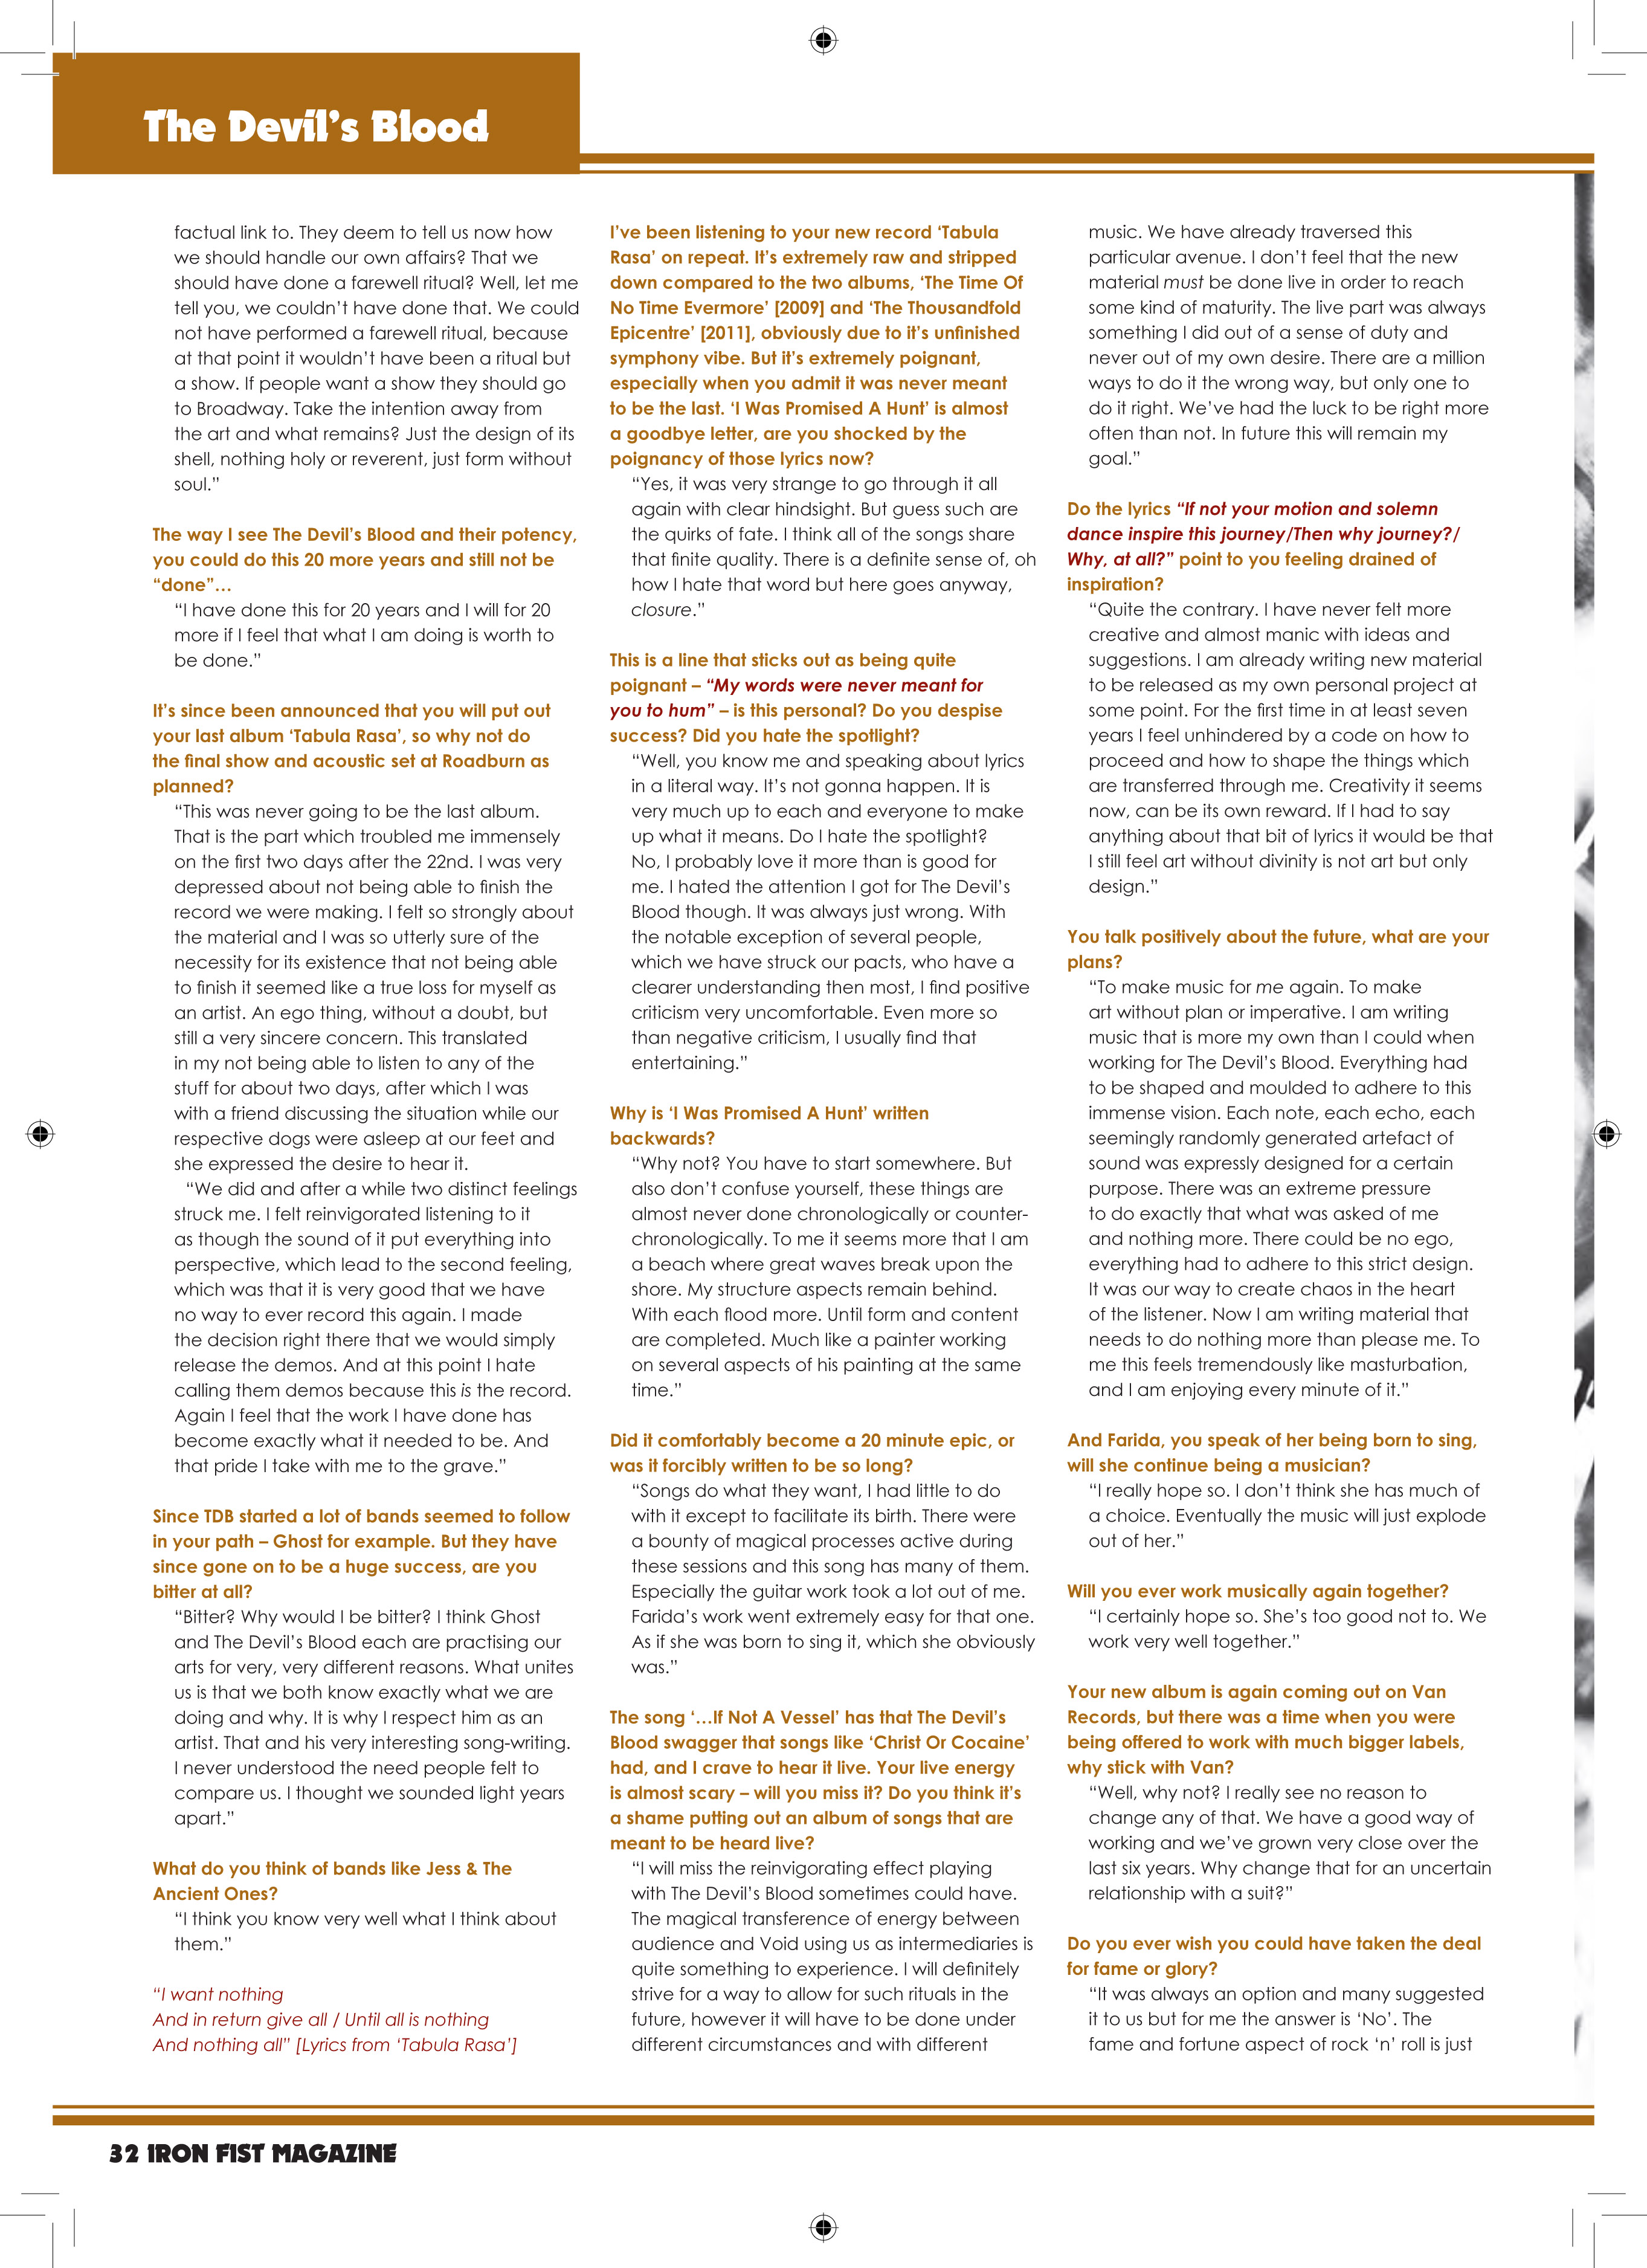 TDB interview page 3